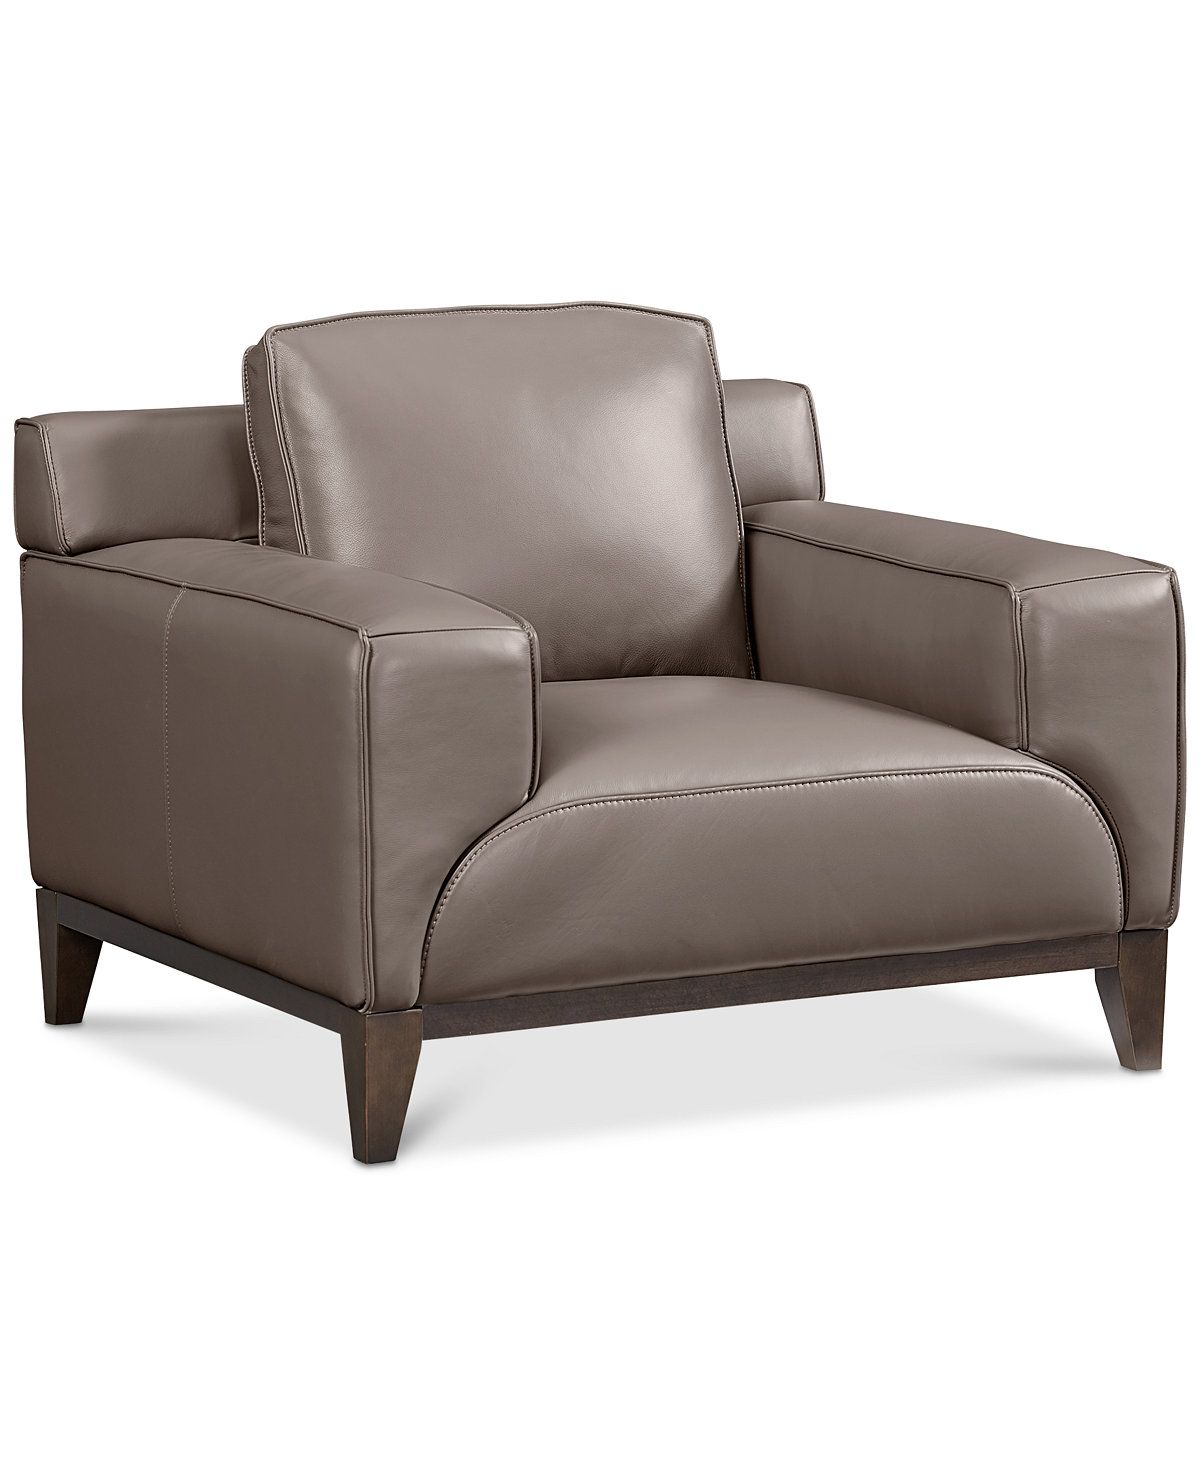 Macys Leather Chair Ticino Leather Chair Created For Macy S Sale Closeout